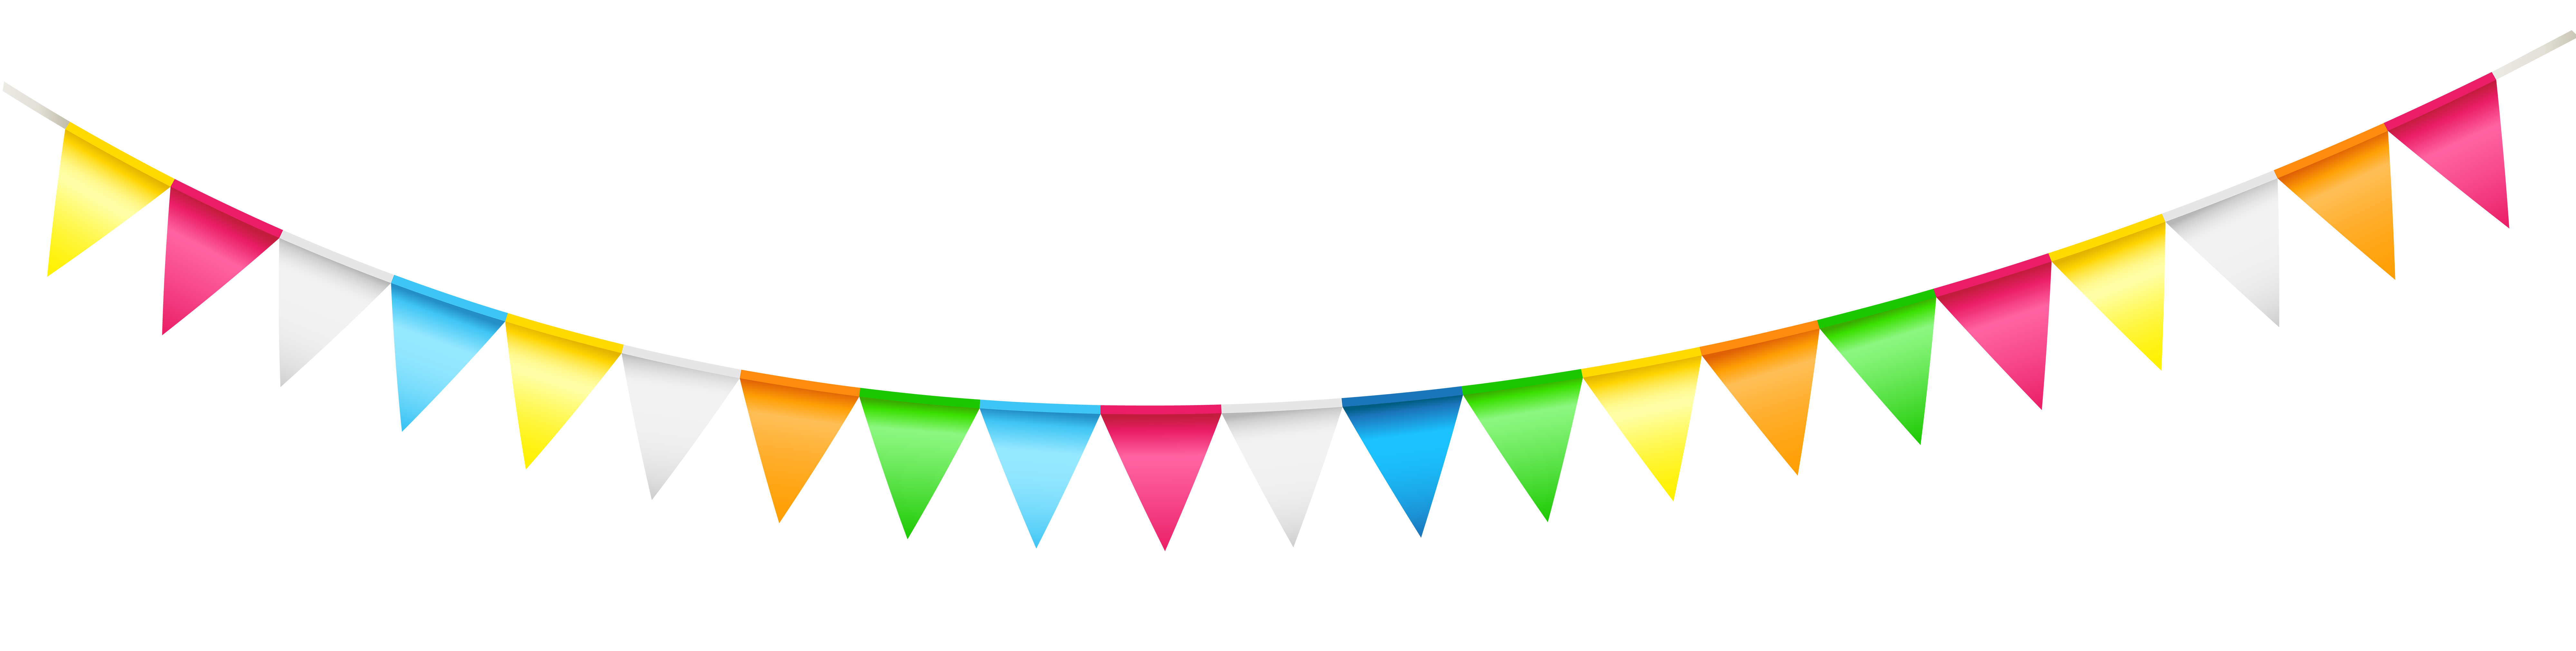 Garland clipart streamer. Party transparent png clip